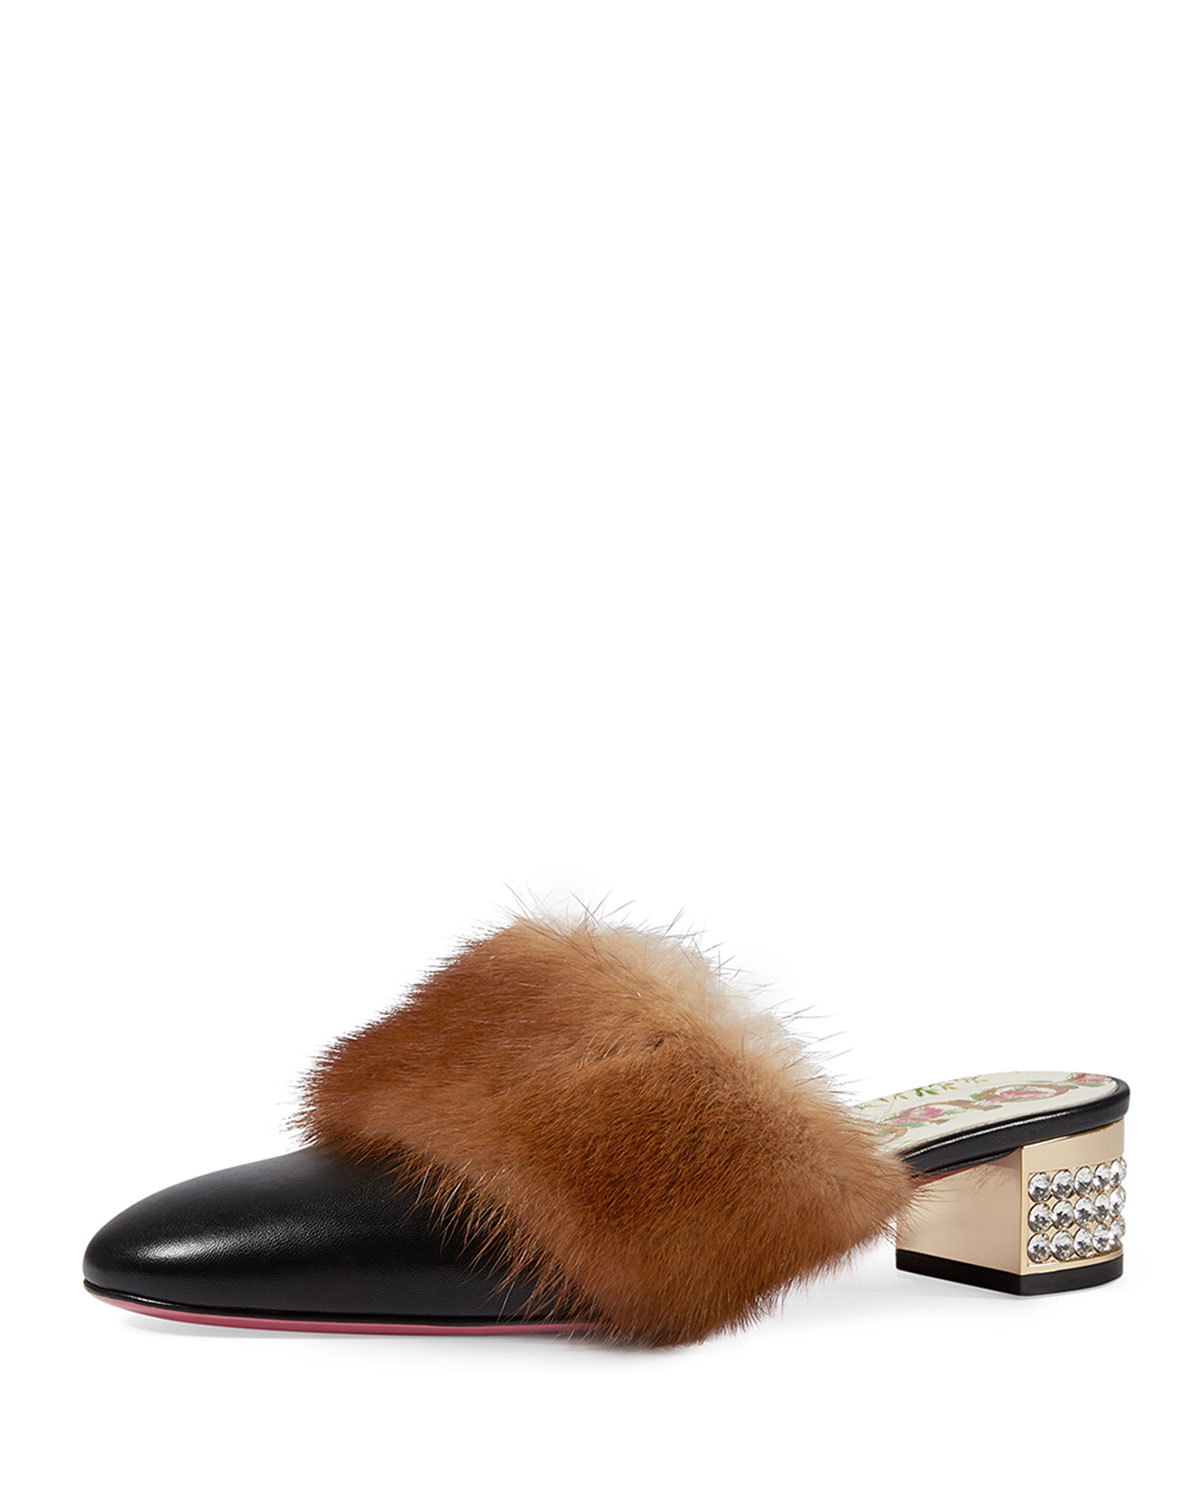 94436d857 Gucci 35mm Candy Leather Mule With Fur Trim | Neiman Marcus